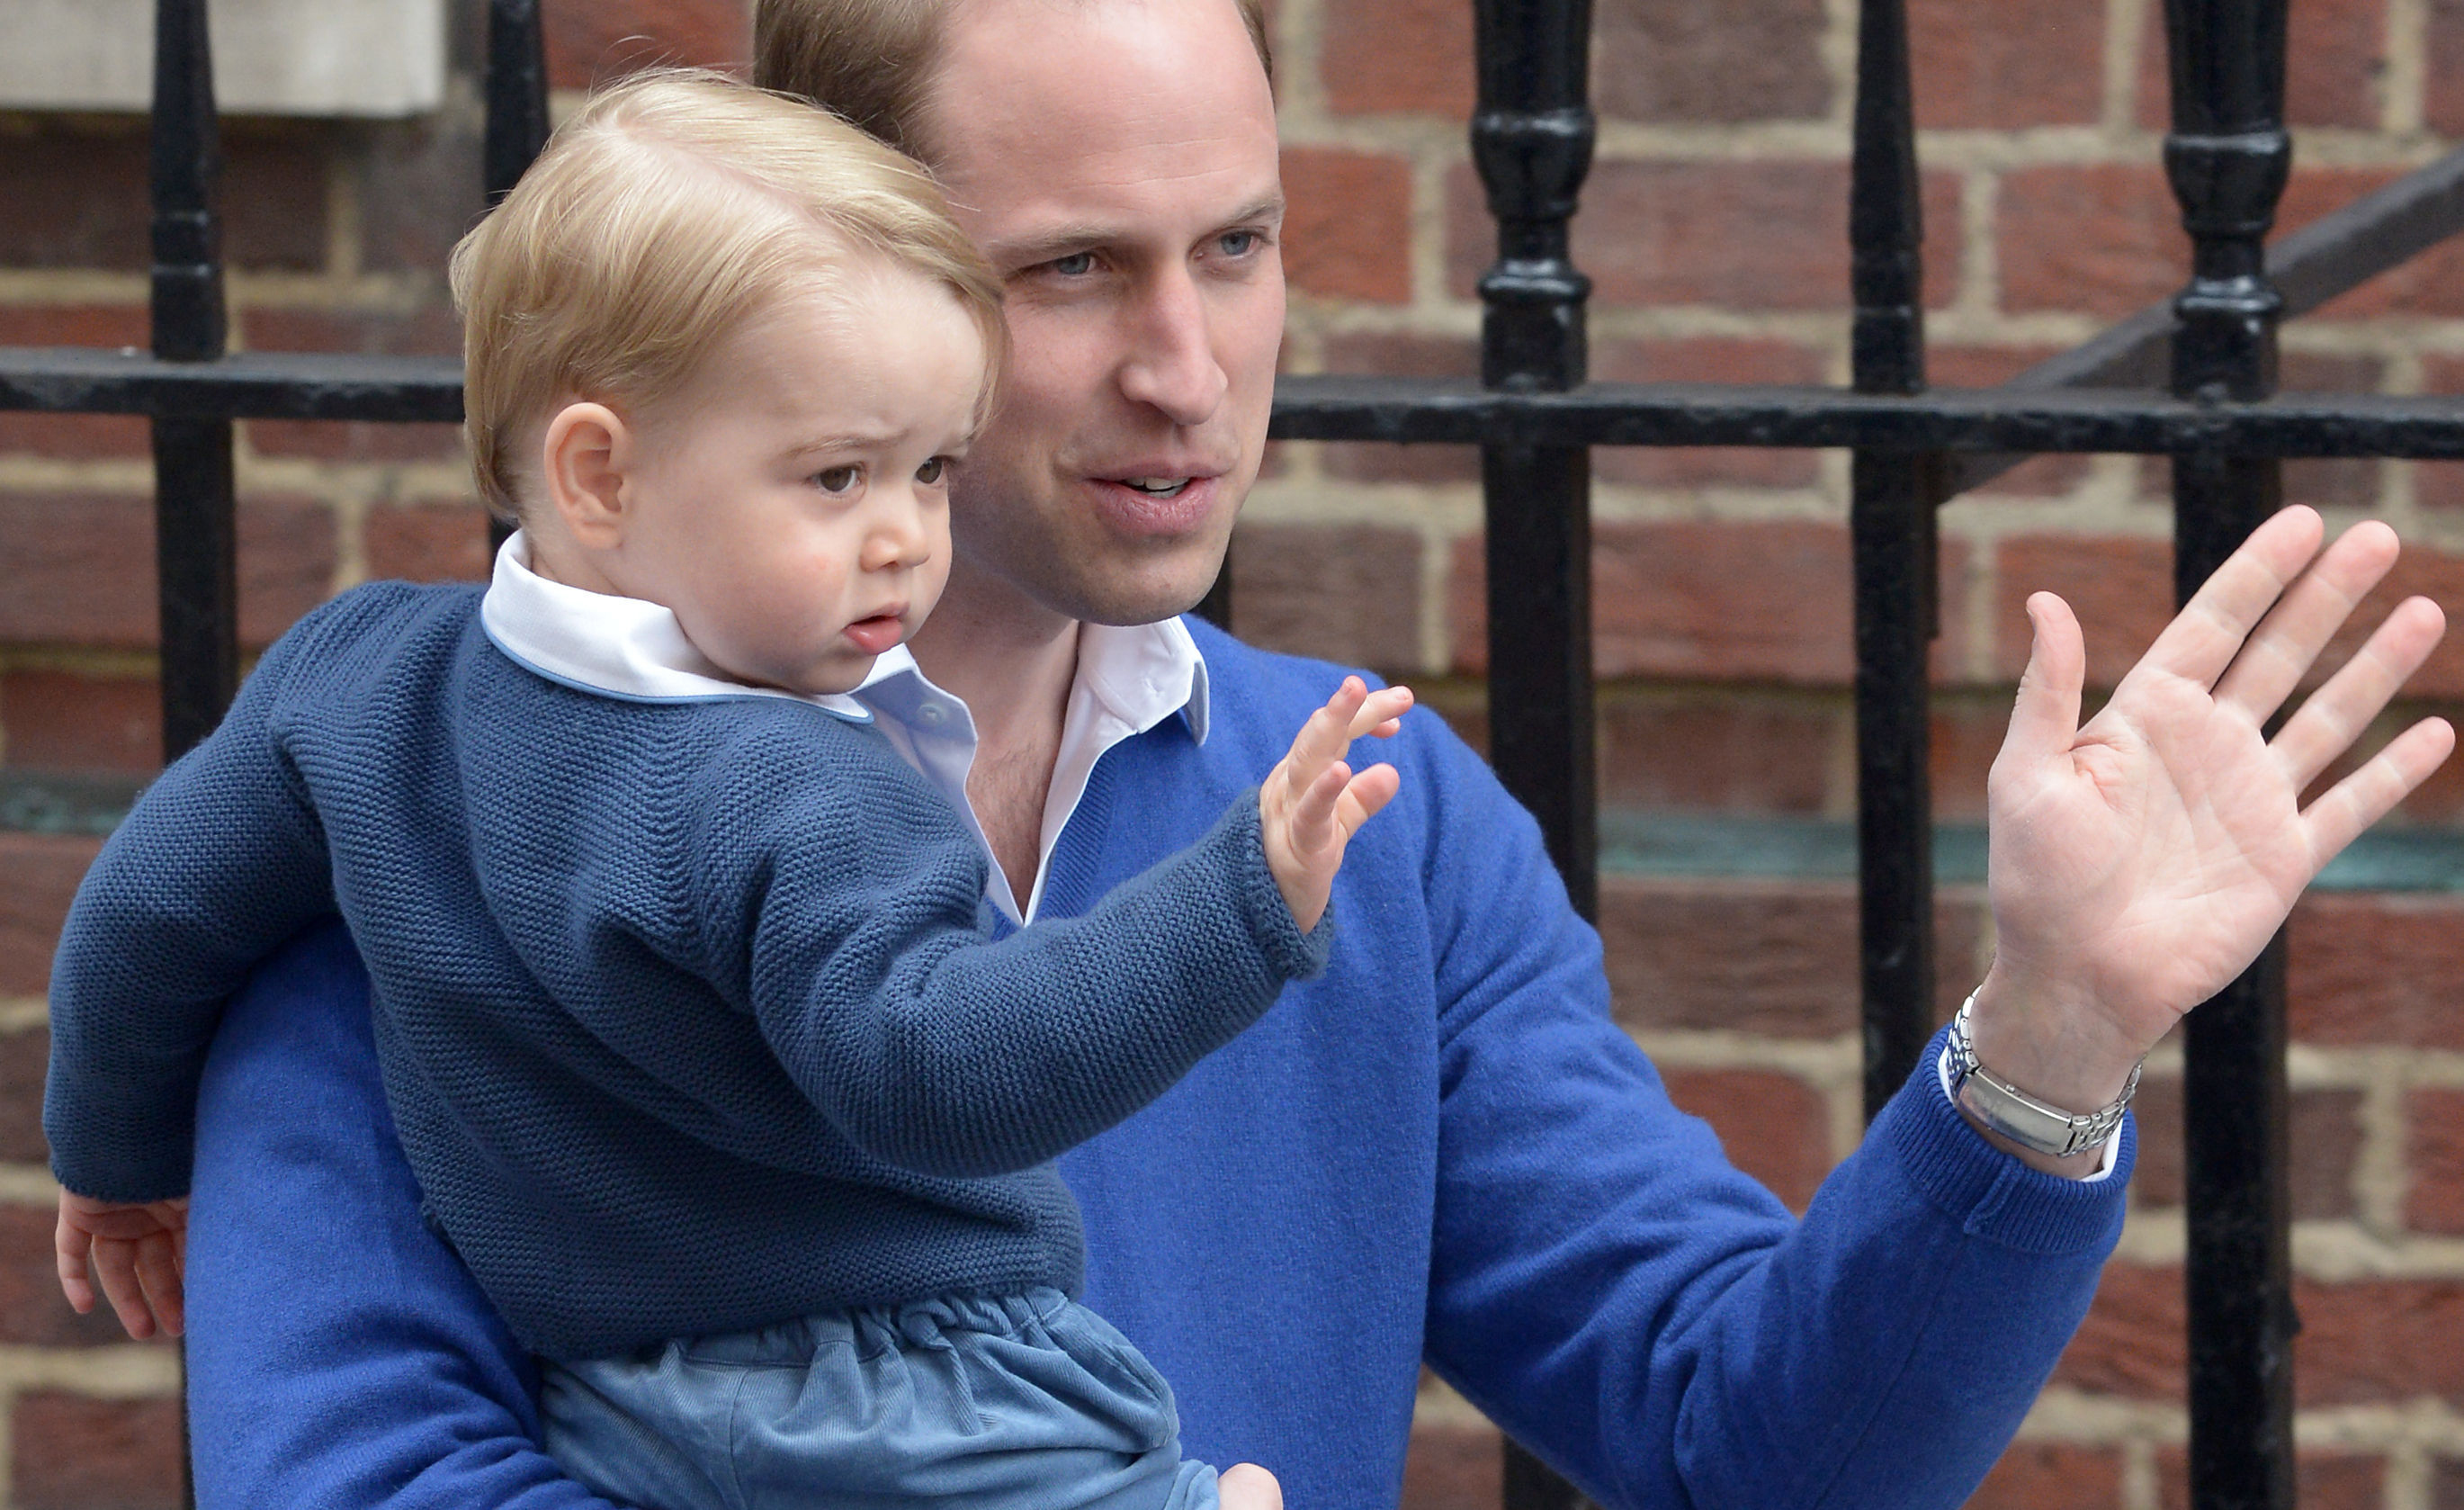 File photo dated May 2, 2015 of the Duke of Cambridge with his son Prince George as he arrives at the Lindo Wing of St Mary's Hospital in London, after the birth of his newborn daughter Princess Charlotte.